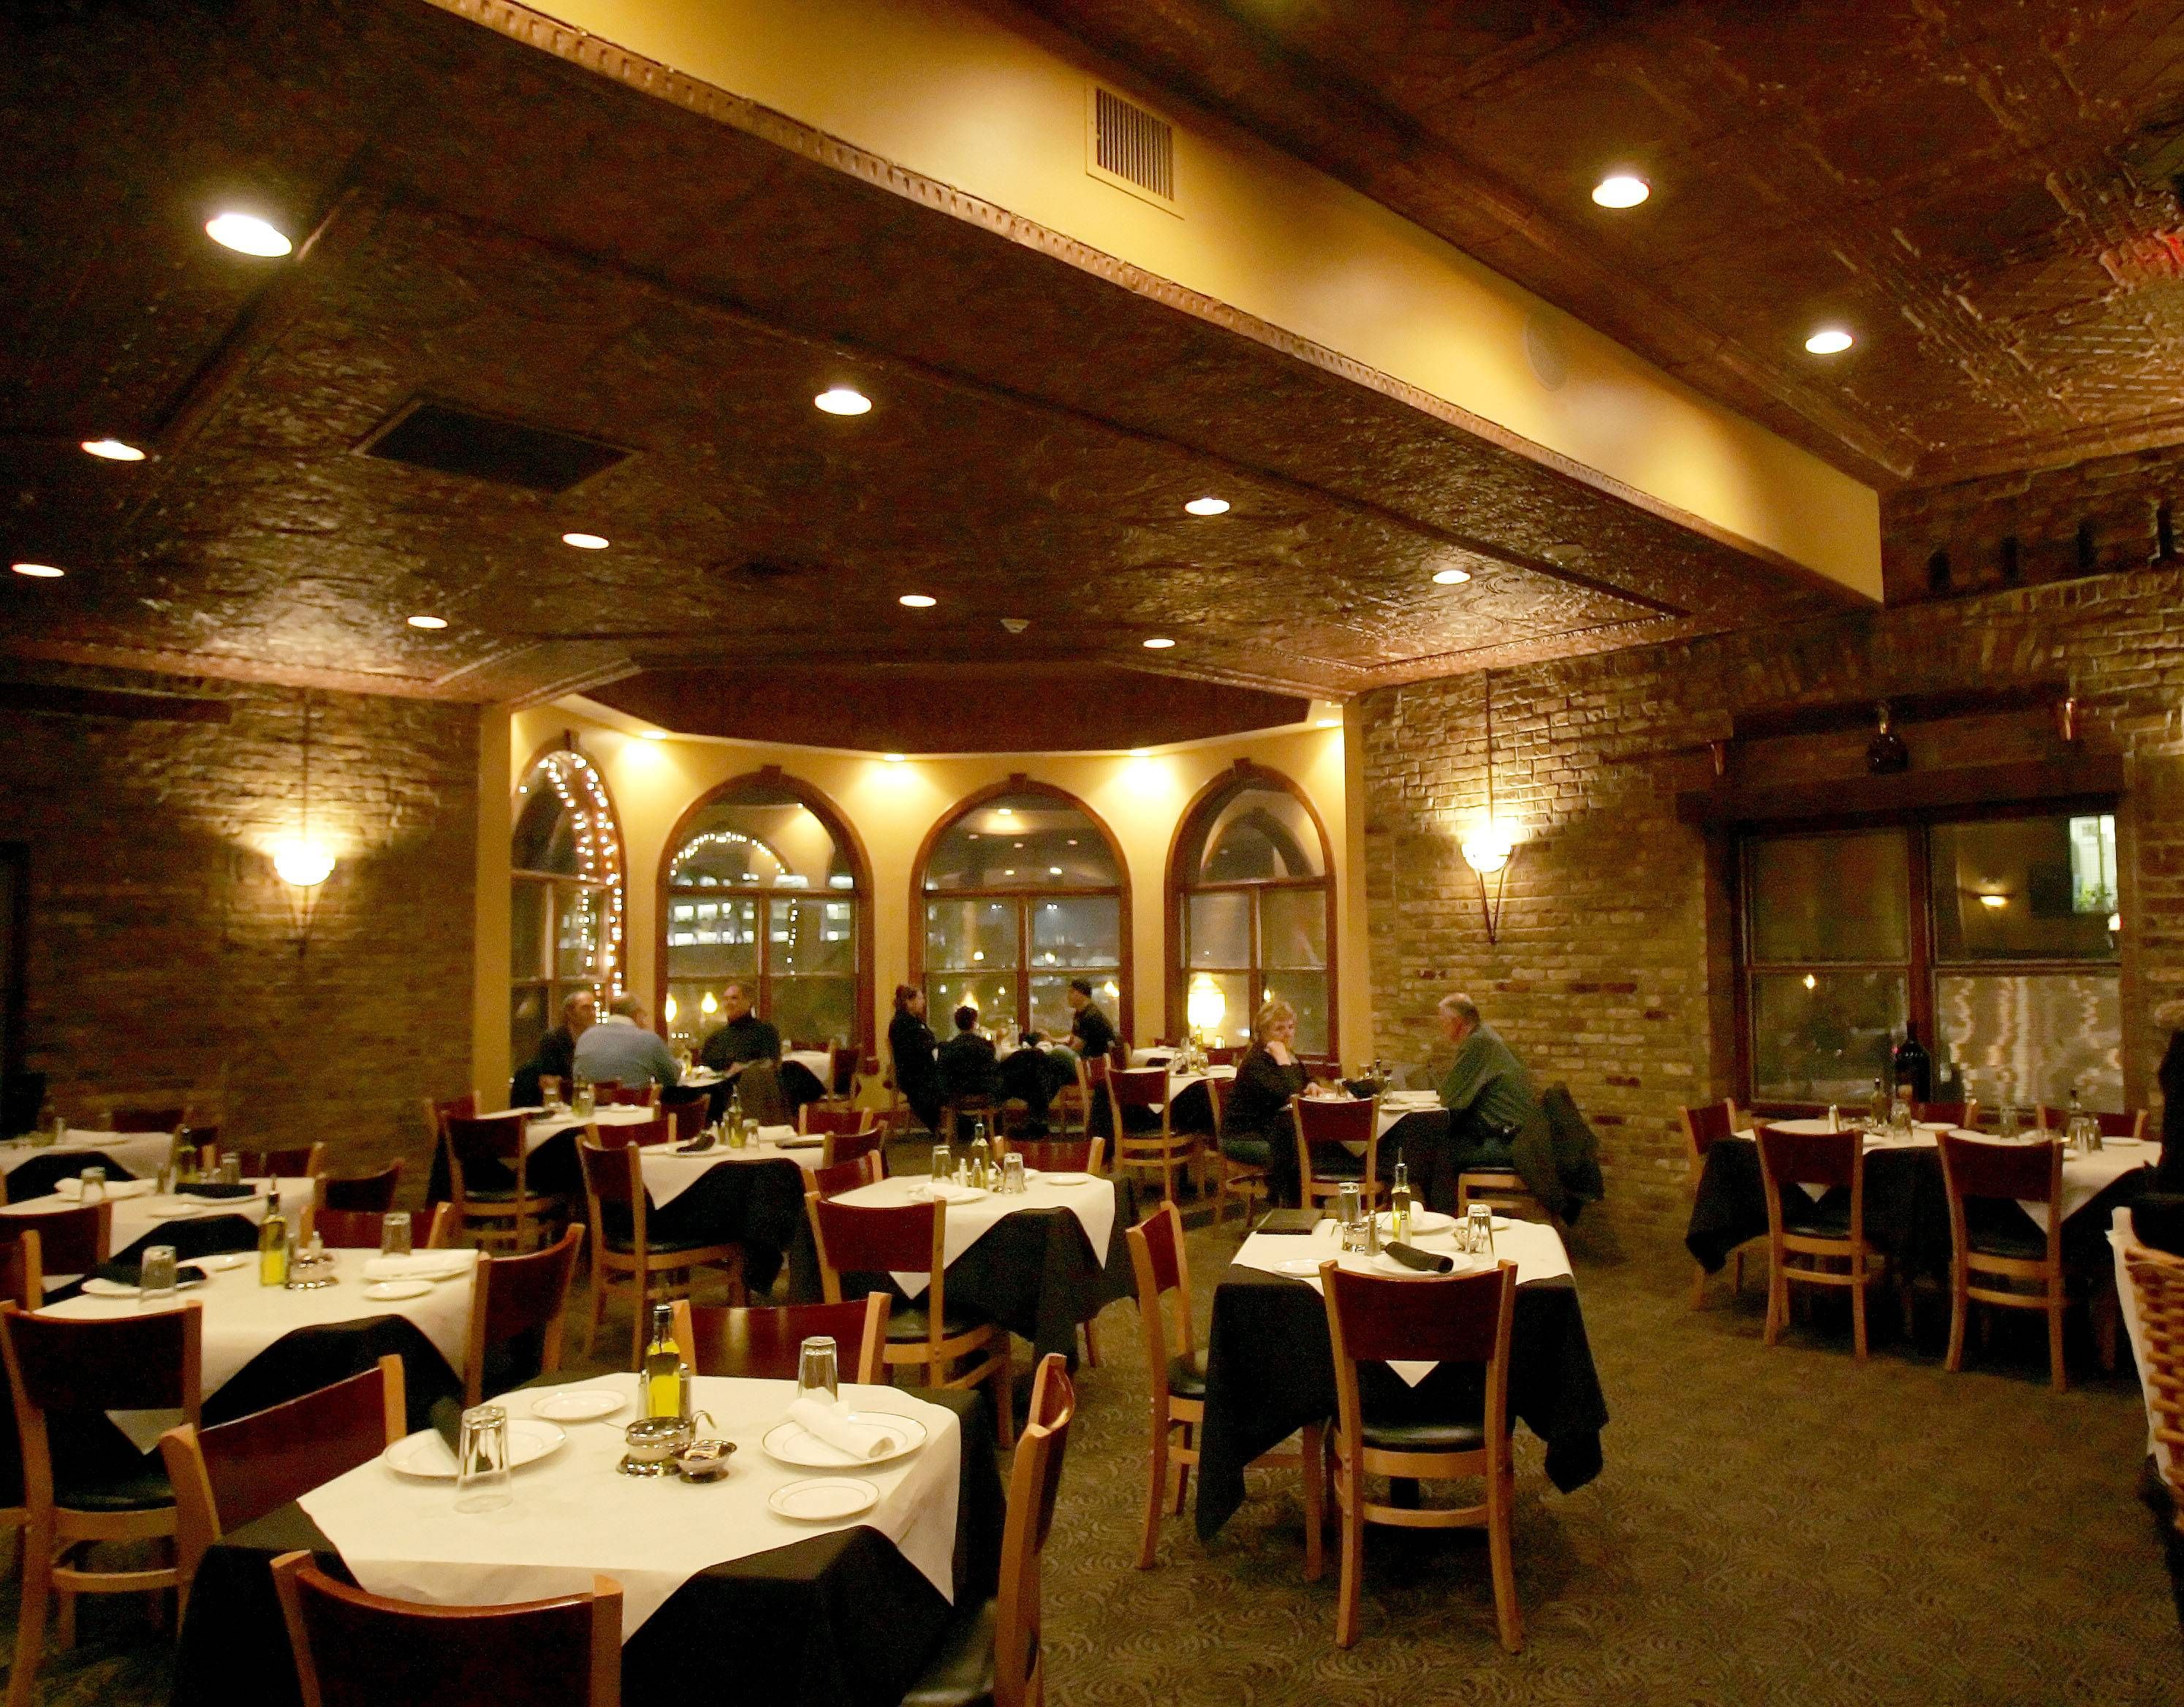 Il Sogno Restaurant In Downtown Wheaton Has Plans To Open A Rooftop Deck Later This Year